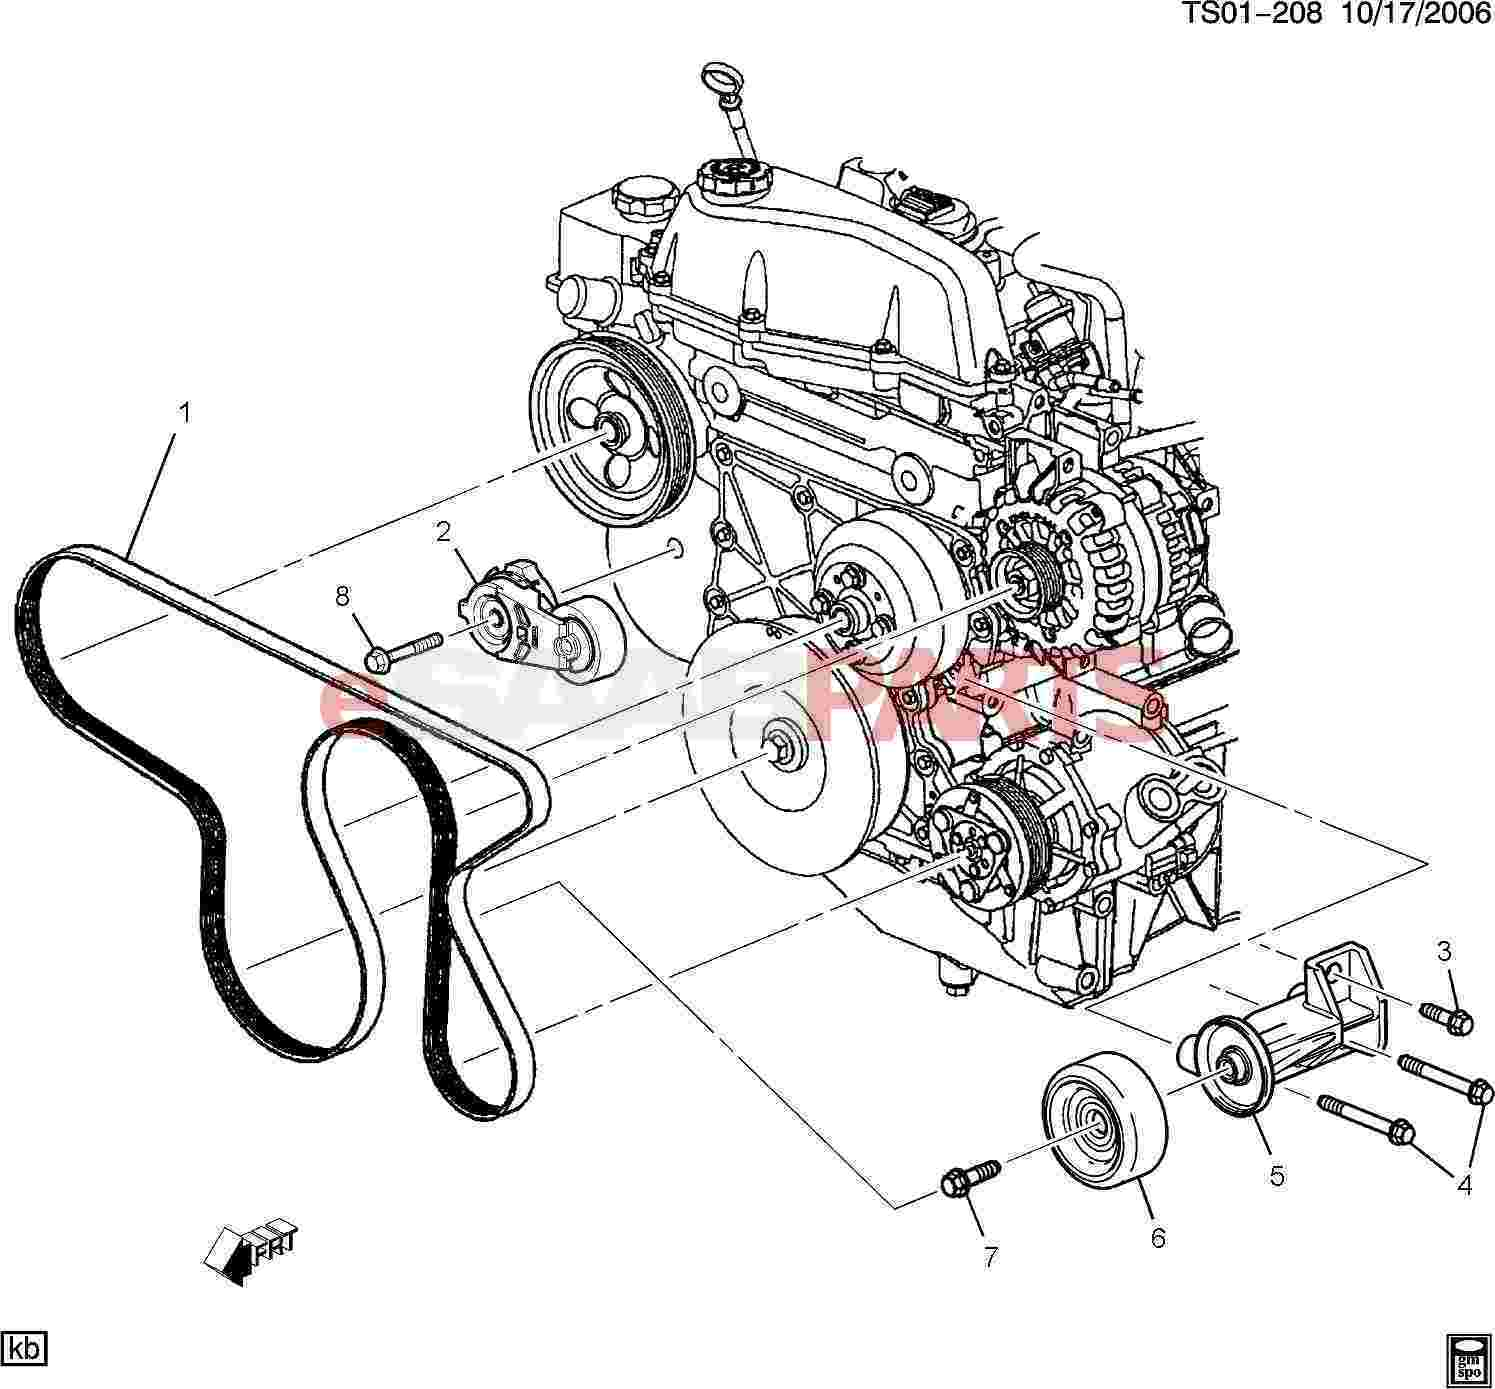 Chevy Blazer Engine Diagram Furthermore Serpentine Belt Diagram